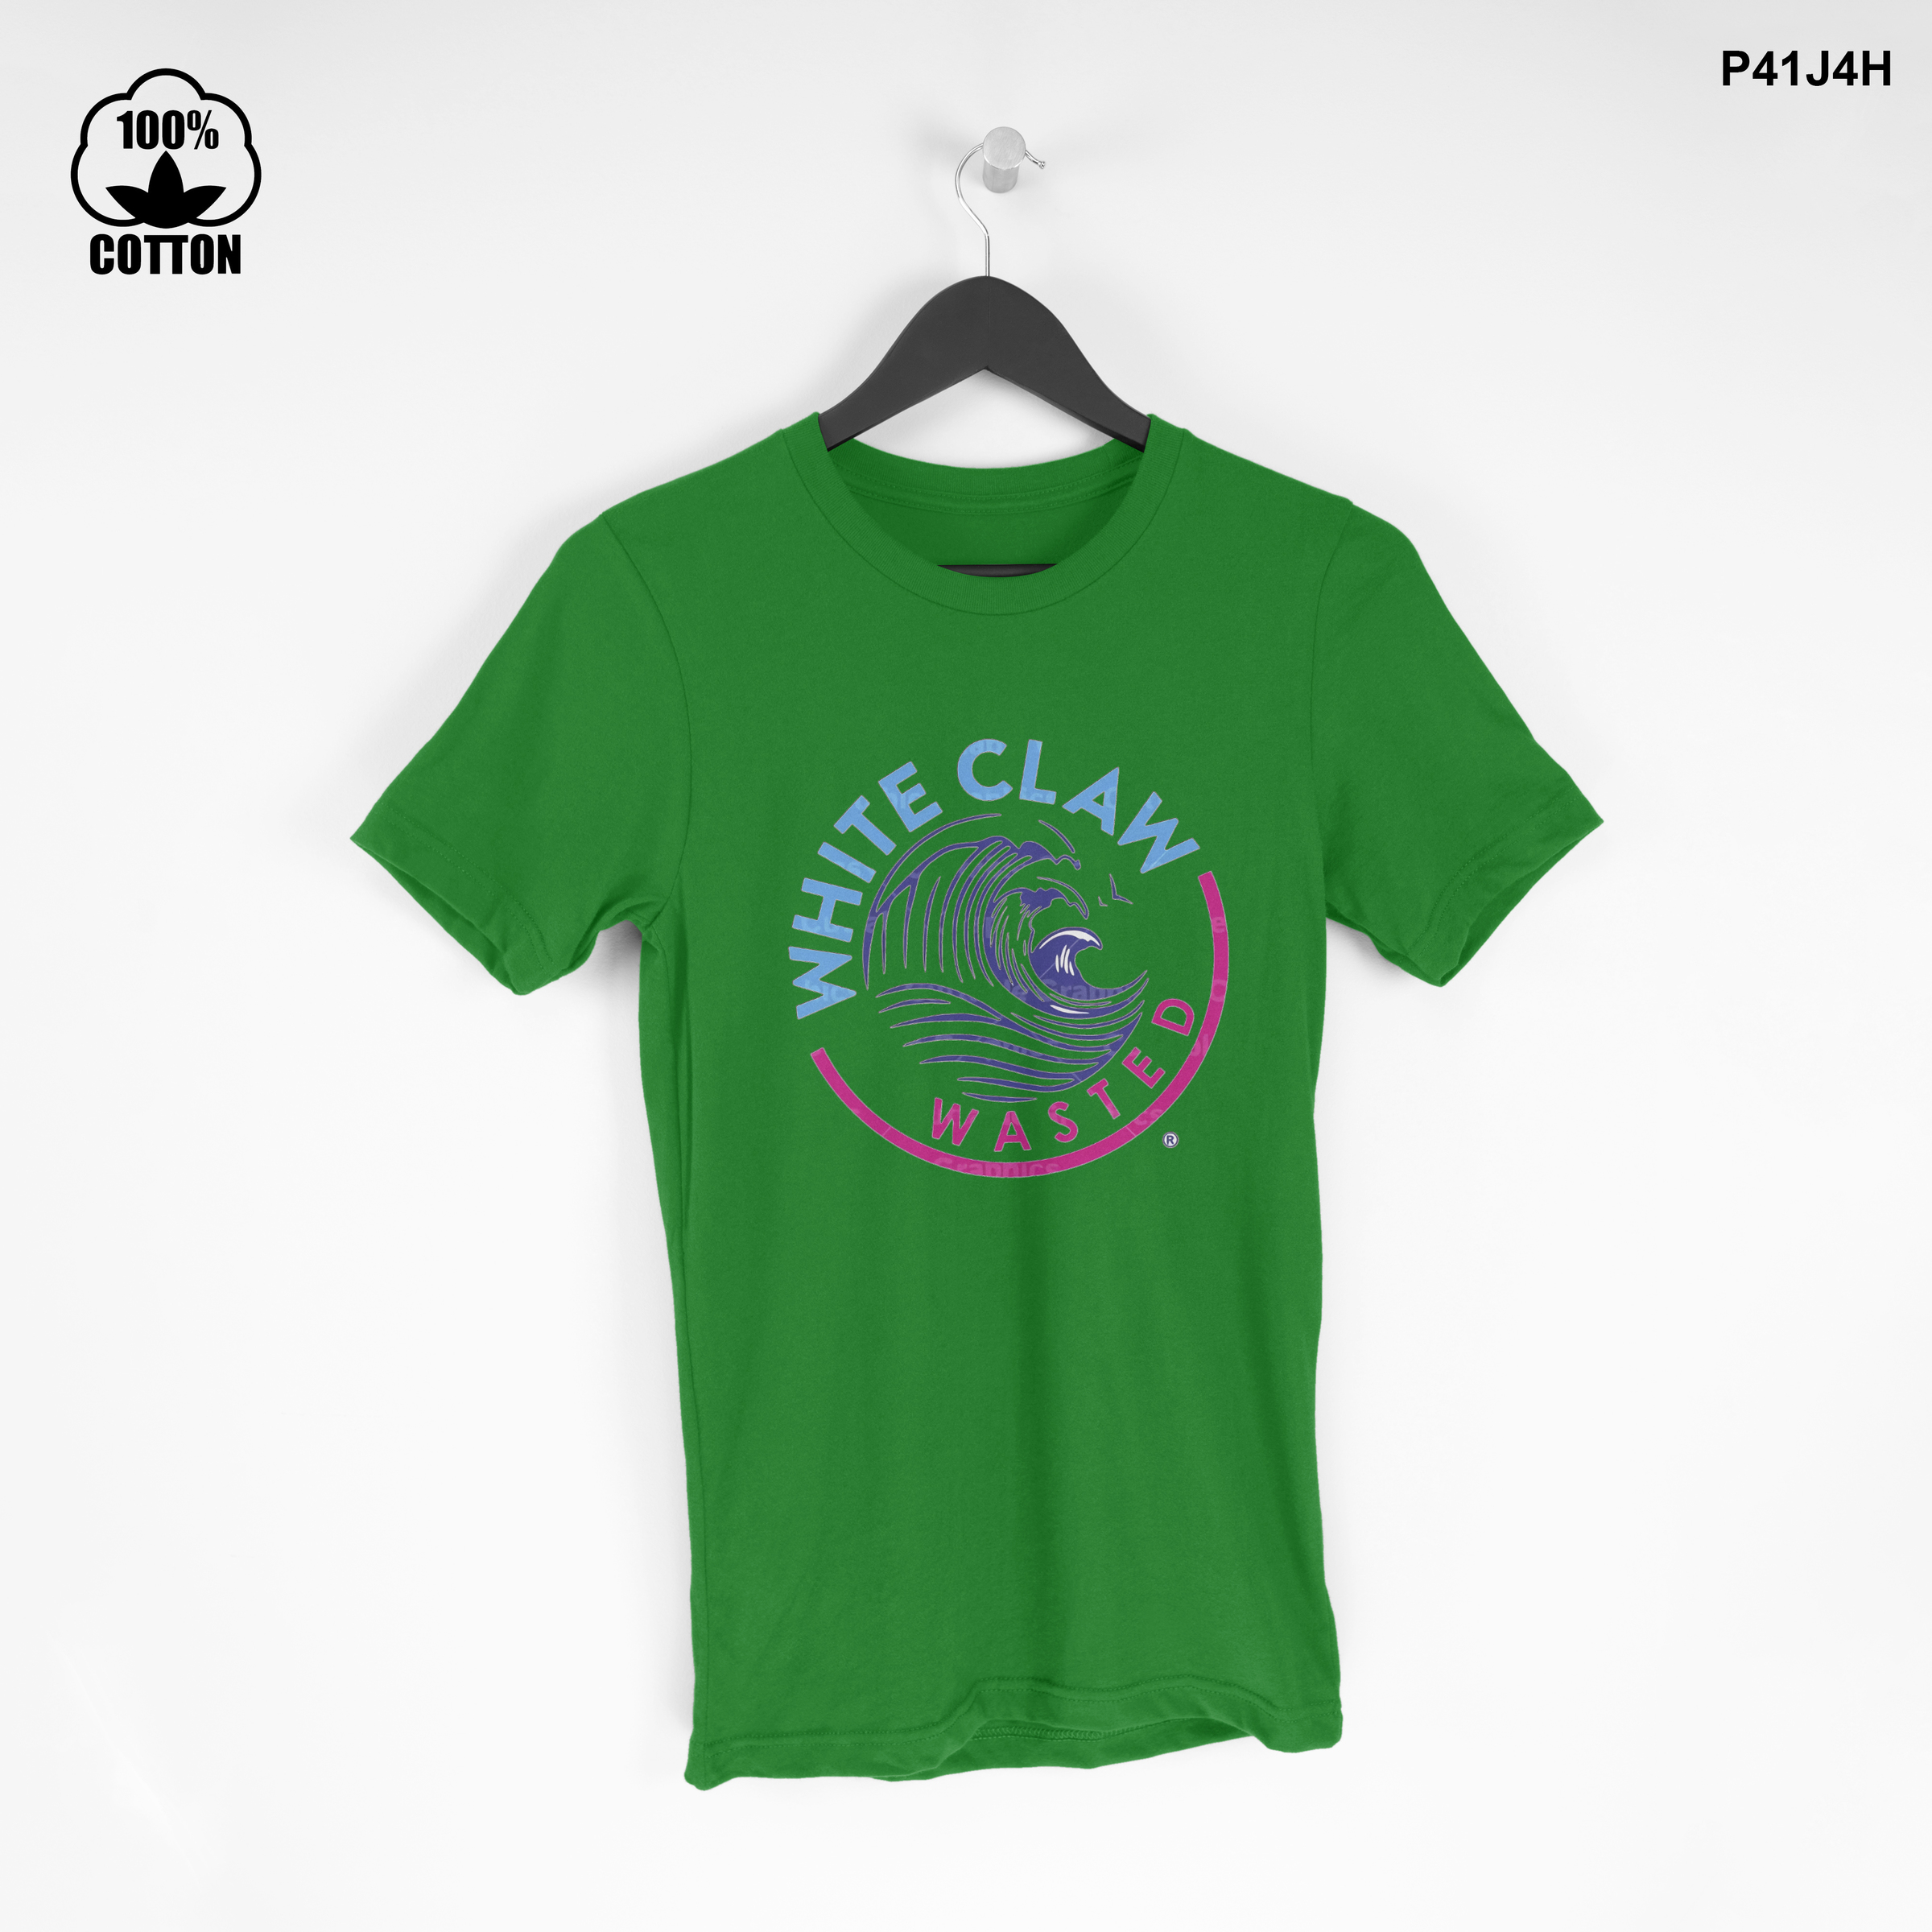 LIMITED EDITION!! Beer White Claw Hard Seltzer Carbonated Water Logo Cider T SHIRT TEE BEST GIVE Spring green.jpg